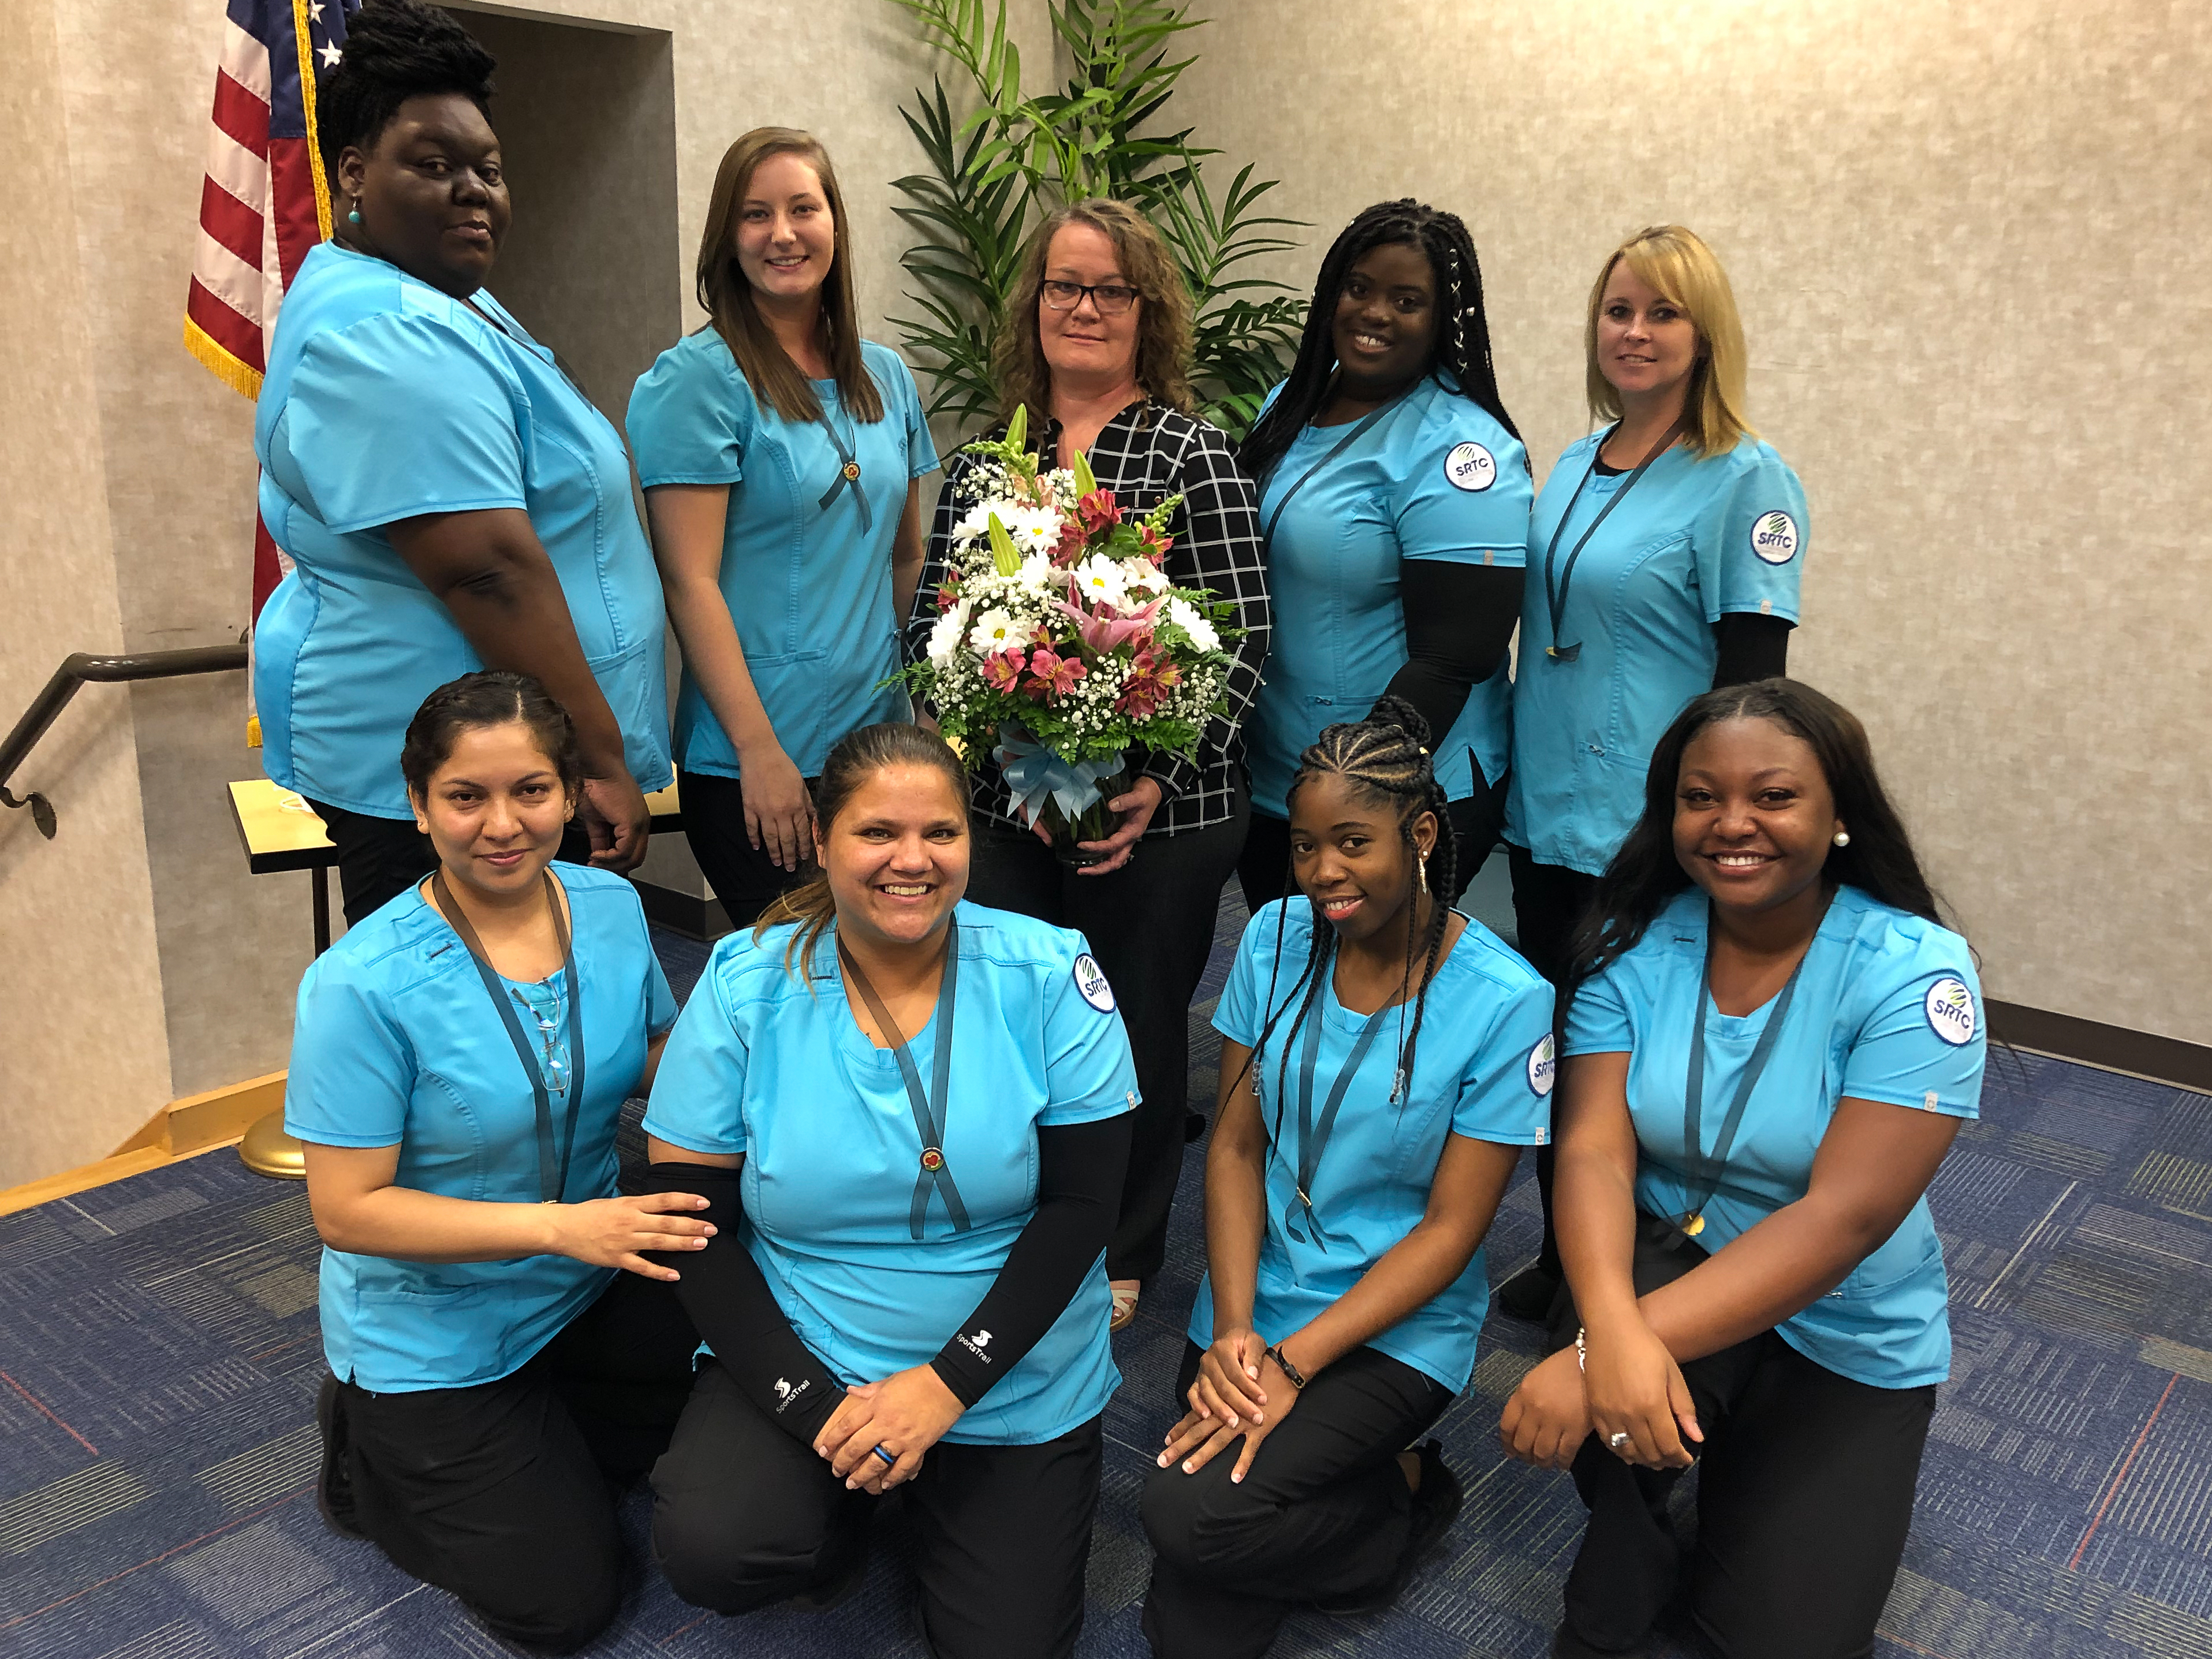 Tifton Medical Assisting Students Recognized At Pinning